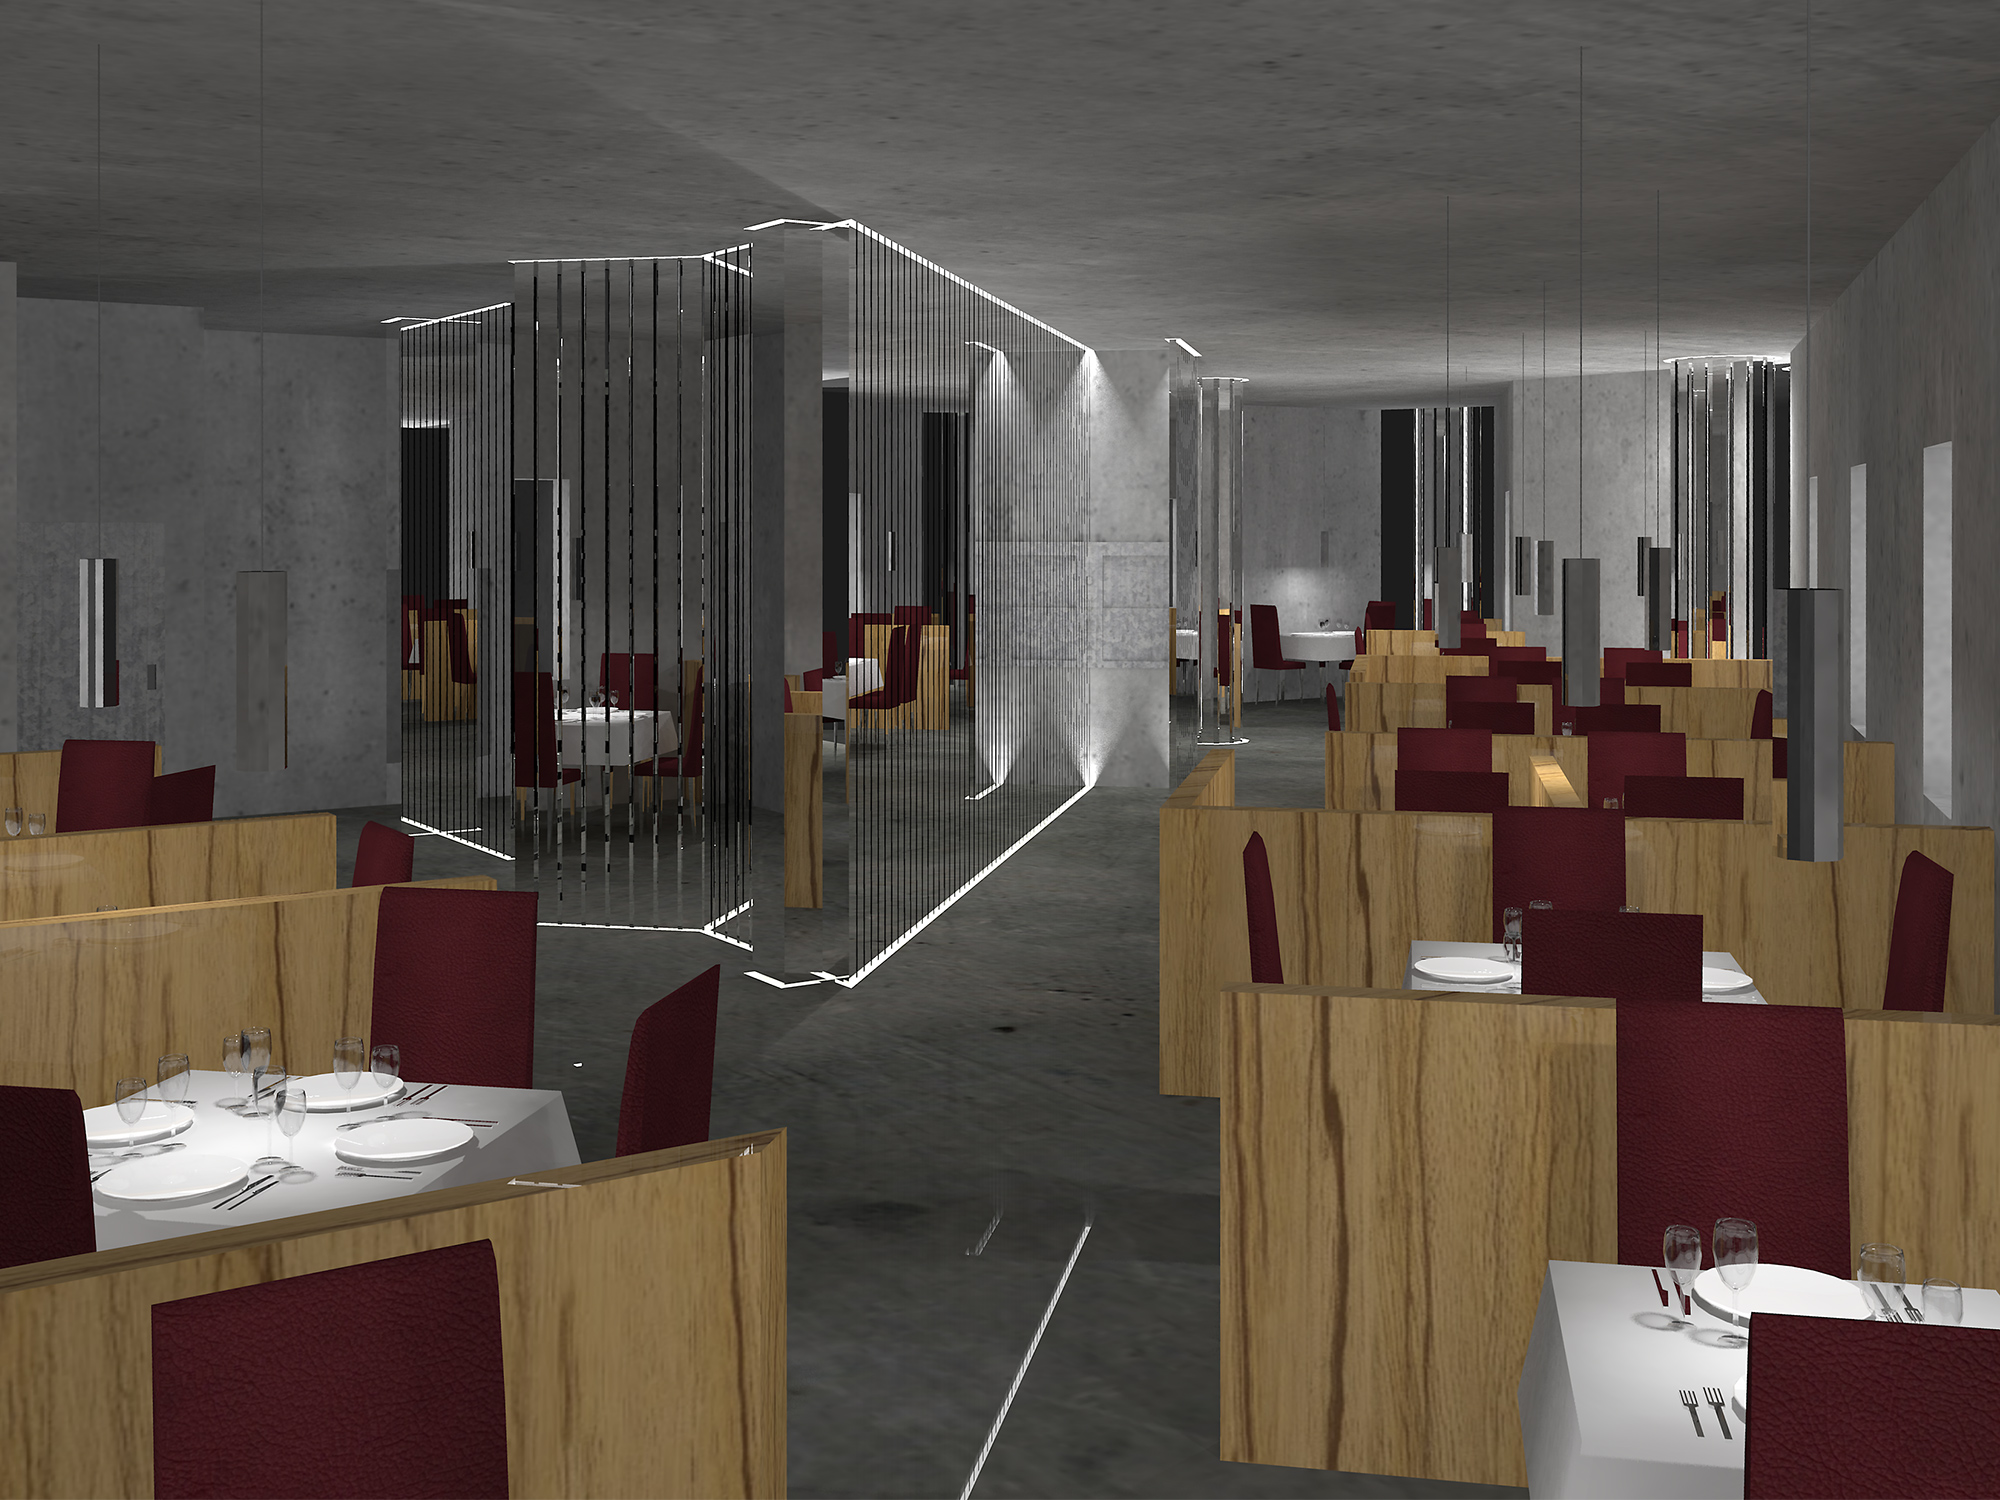 Art deco restaurant with concrete walls, chrome bars and pendants, oak partitions and oxblood leather seats